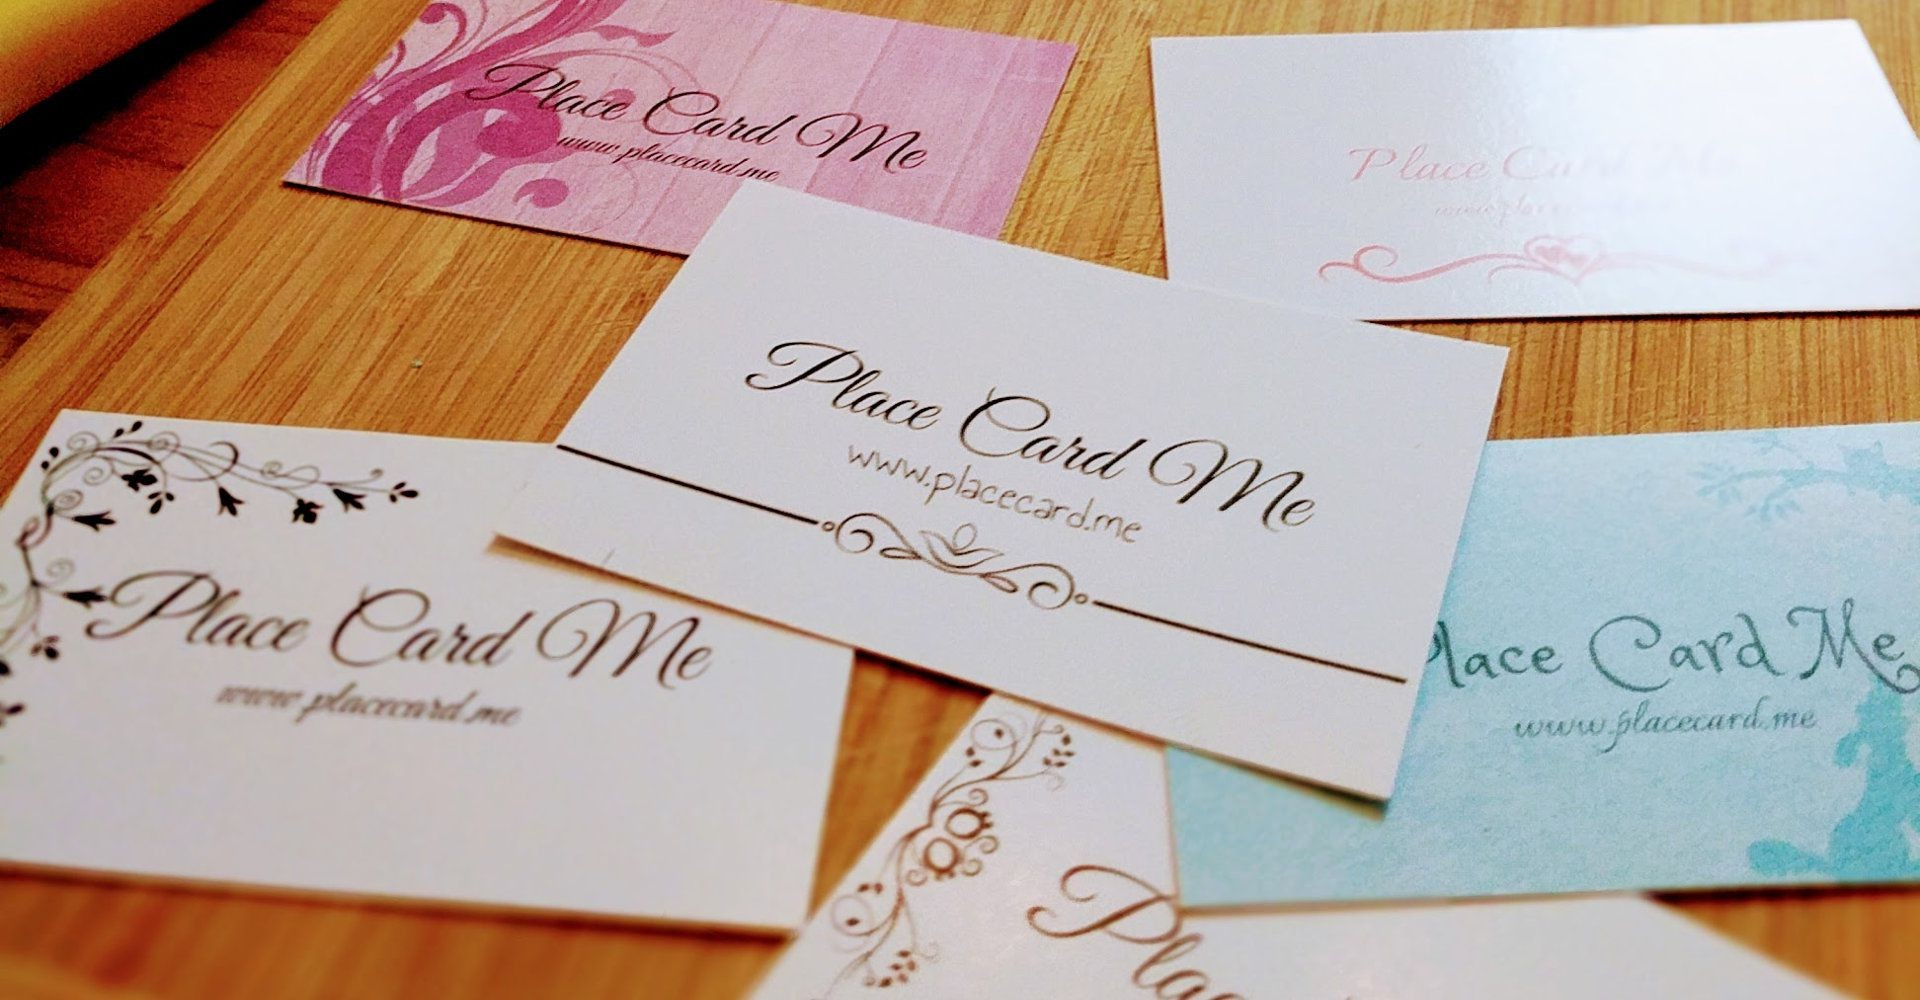 006 Amazing Wedding Name Card Template Image  Templates For Table Place Free1920